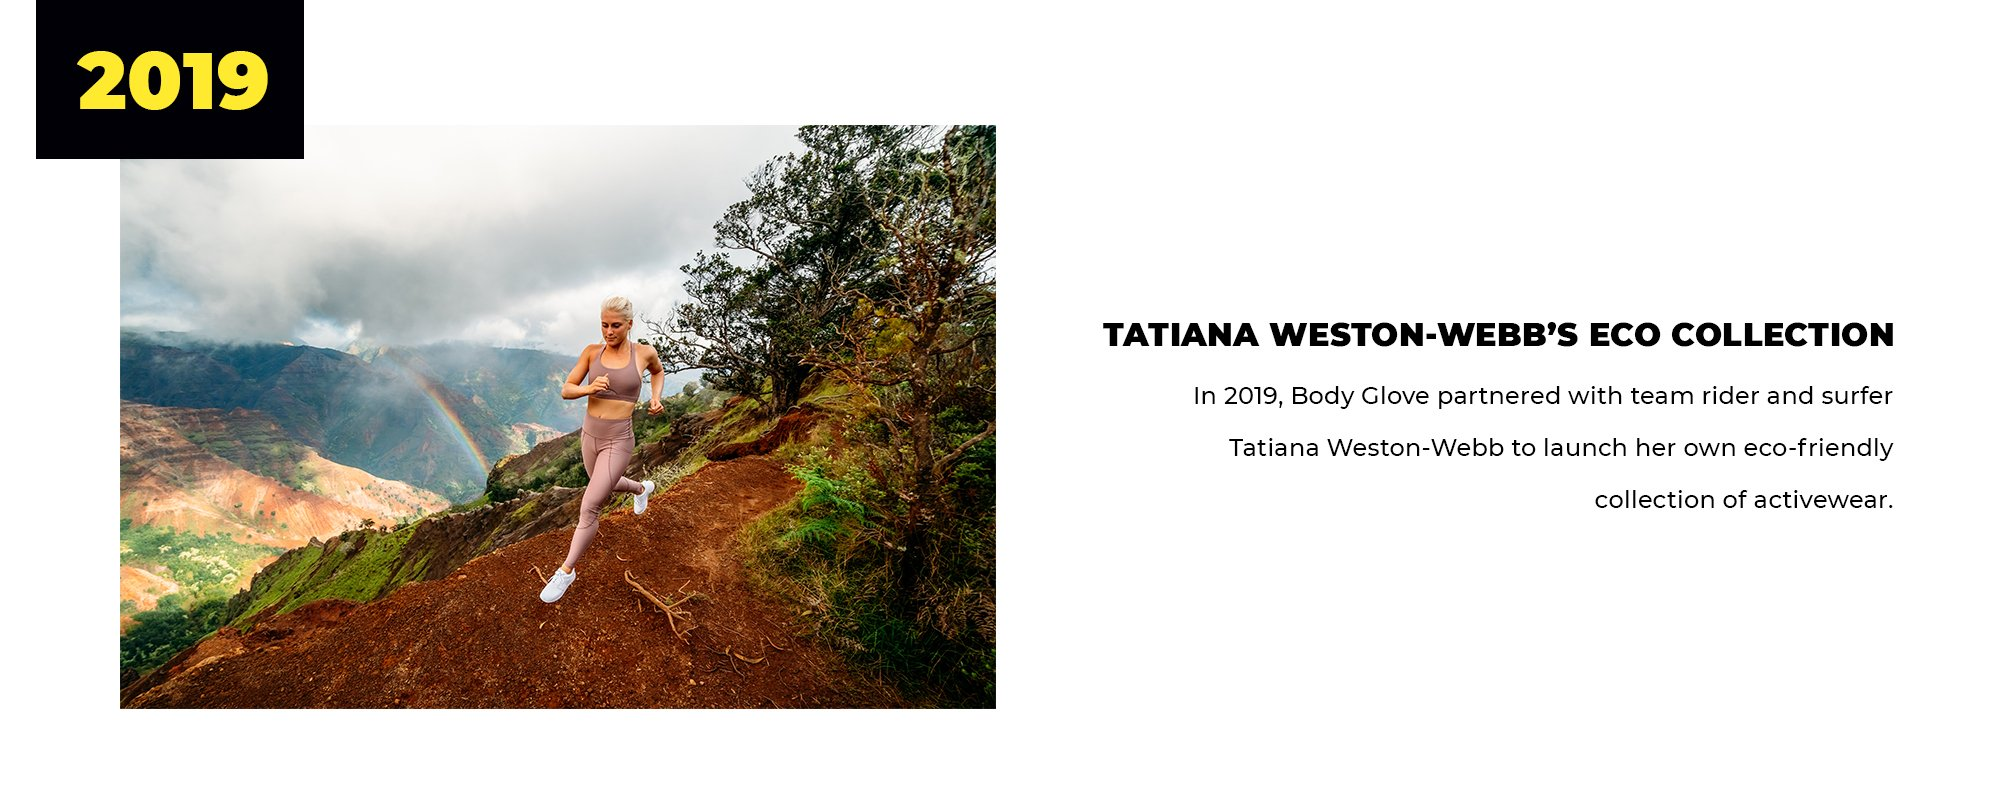 2019 | Tatiana Weston-Webb's Eco Collection | In 2019, Body Glove partnered with team rider and surfer Tatiana Weston-Webb to launch her own eco-friendly collection of activewear.